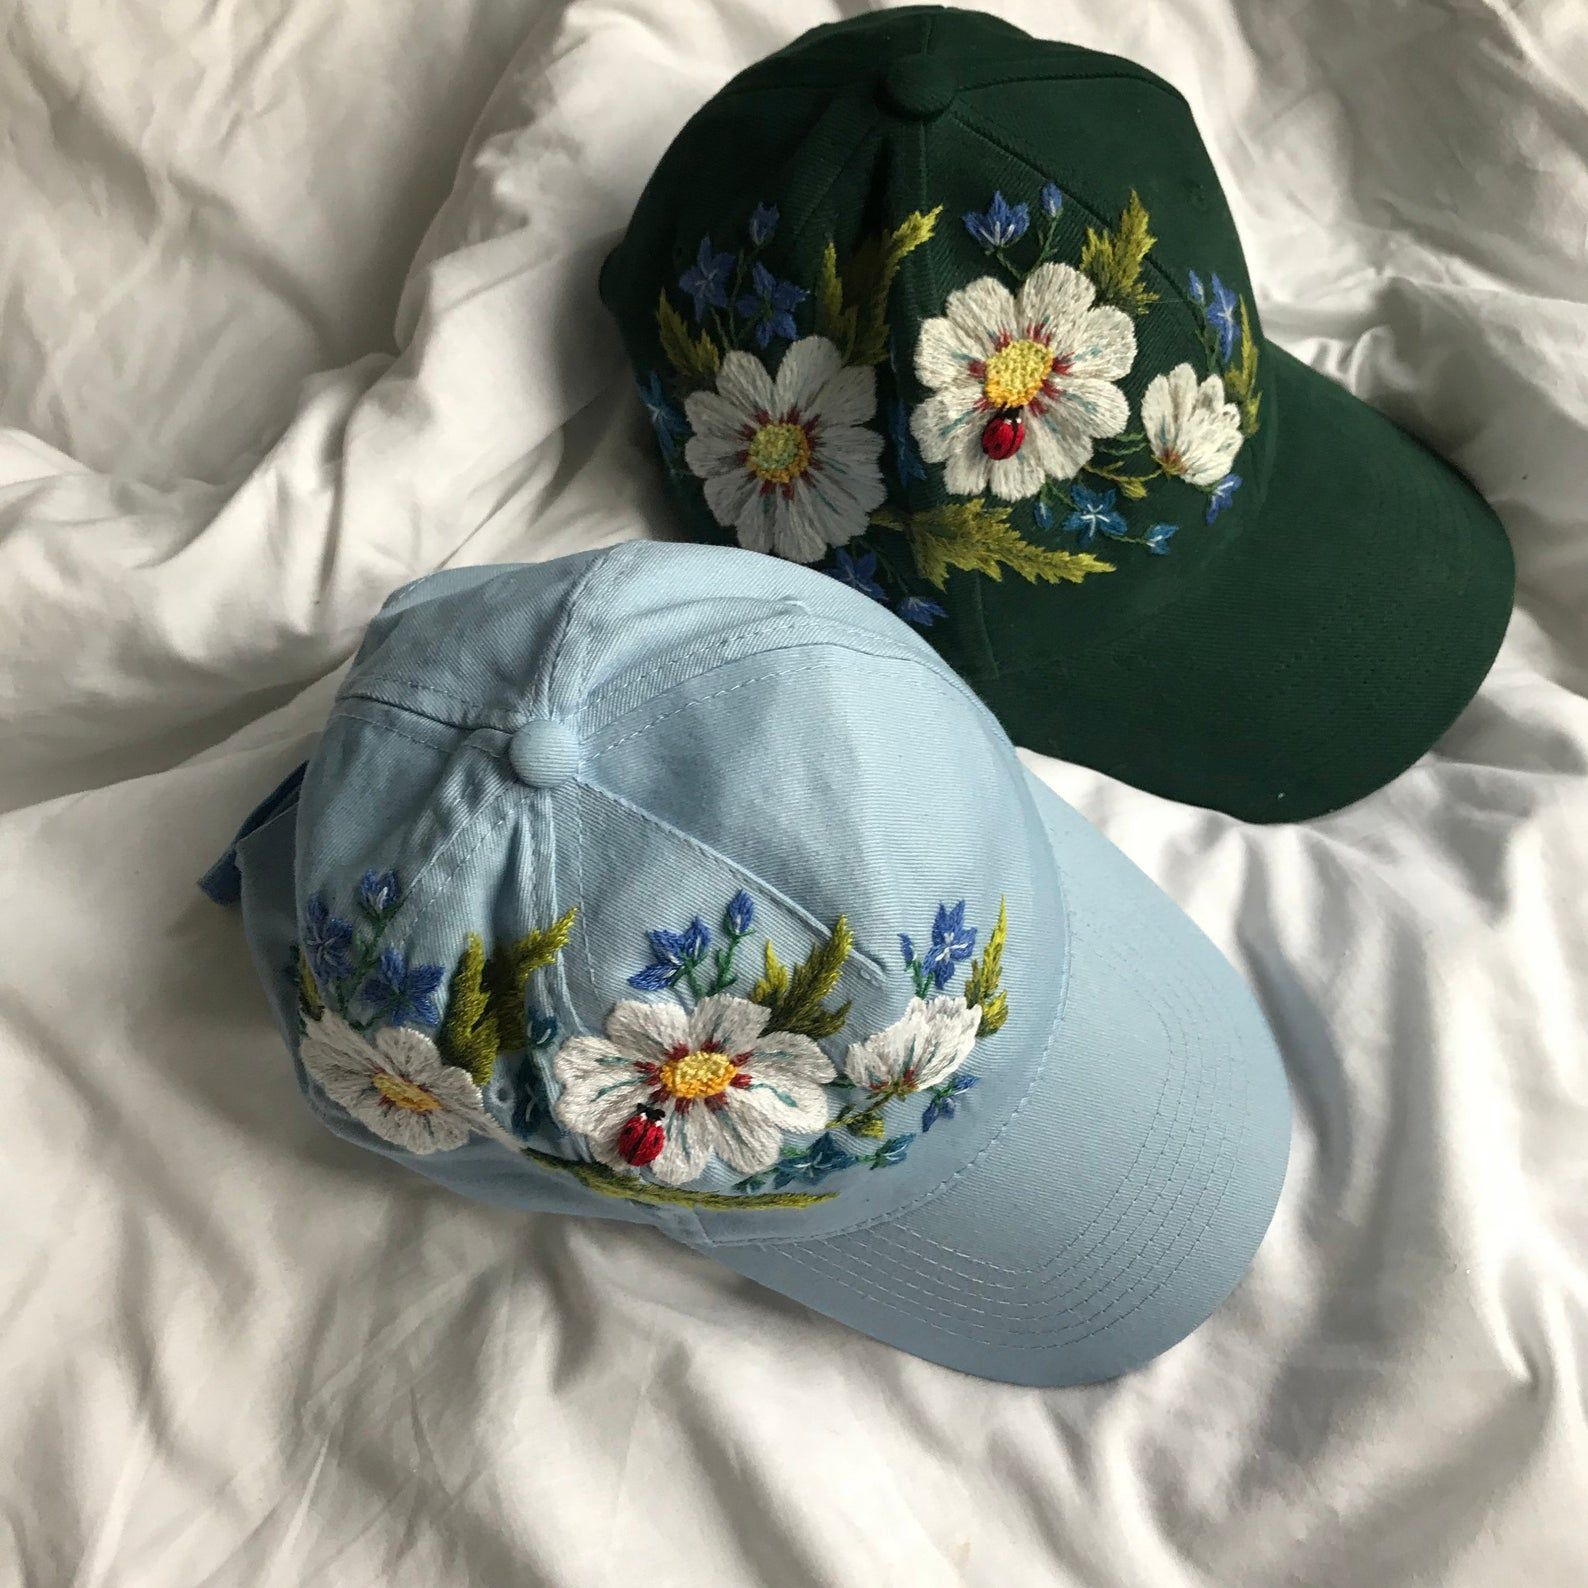 Hand Embroidered Baseball Cap Hand Embroidery Hat Etsy In 2020 Hat Embroidery Mom Hats Hand Embroidered